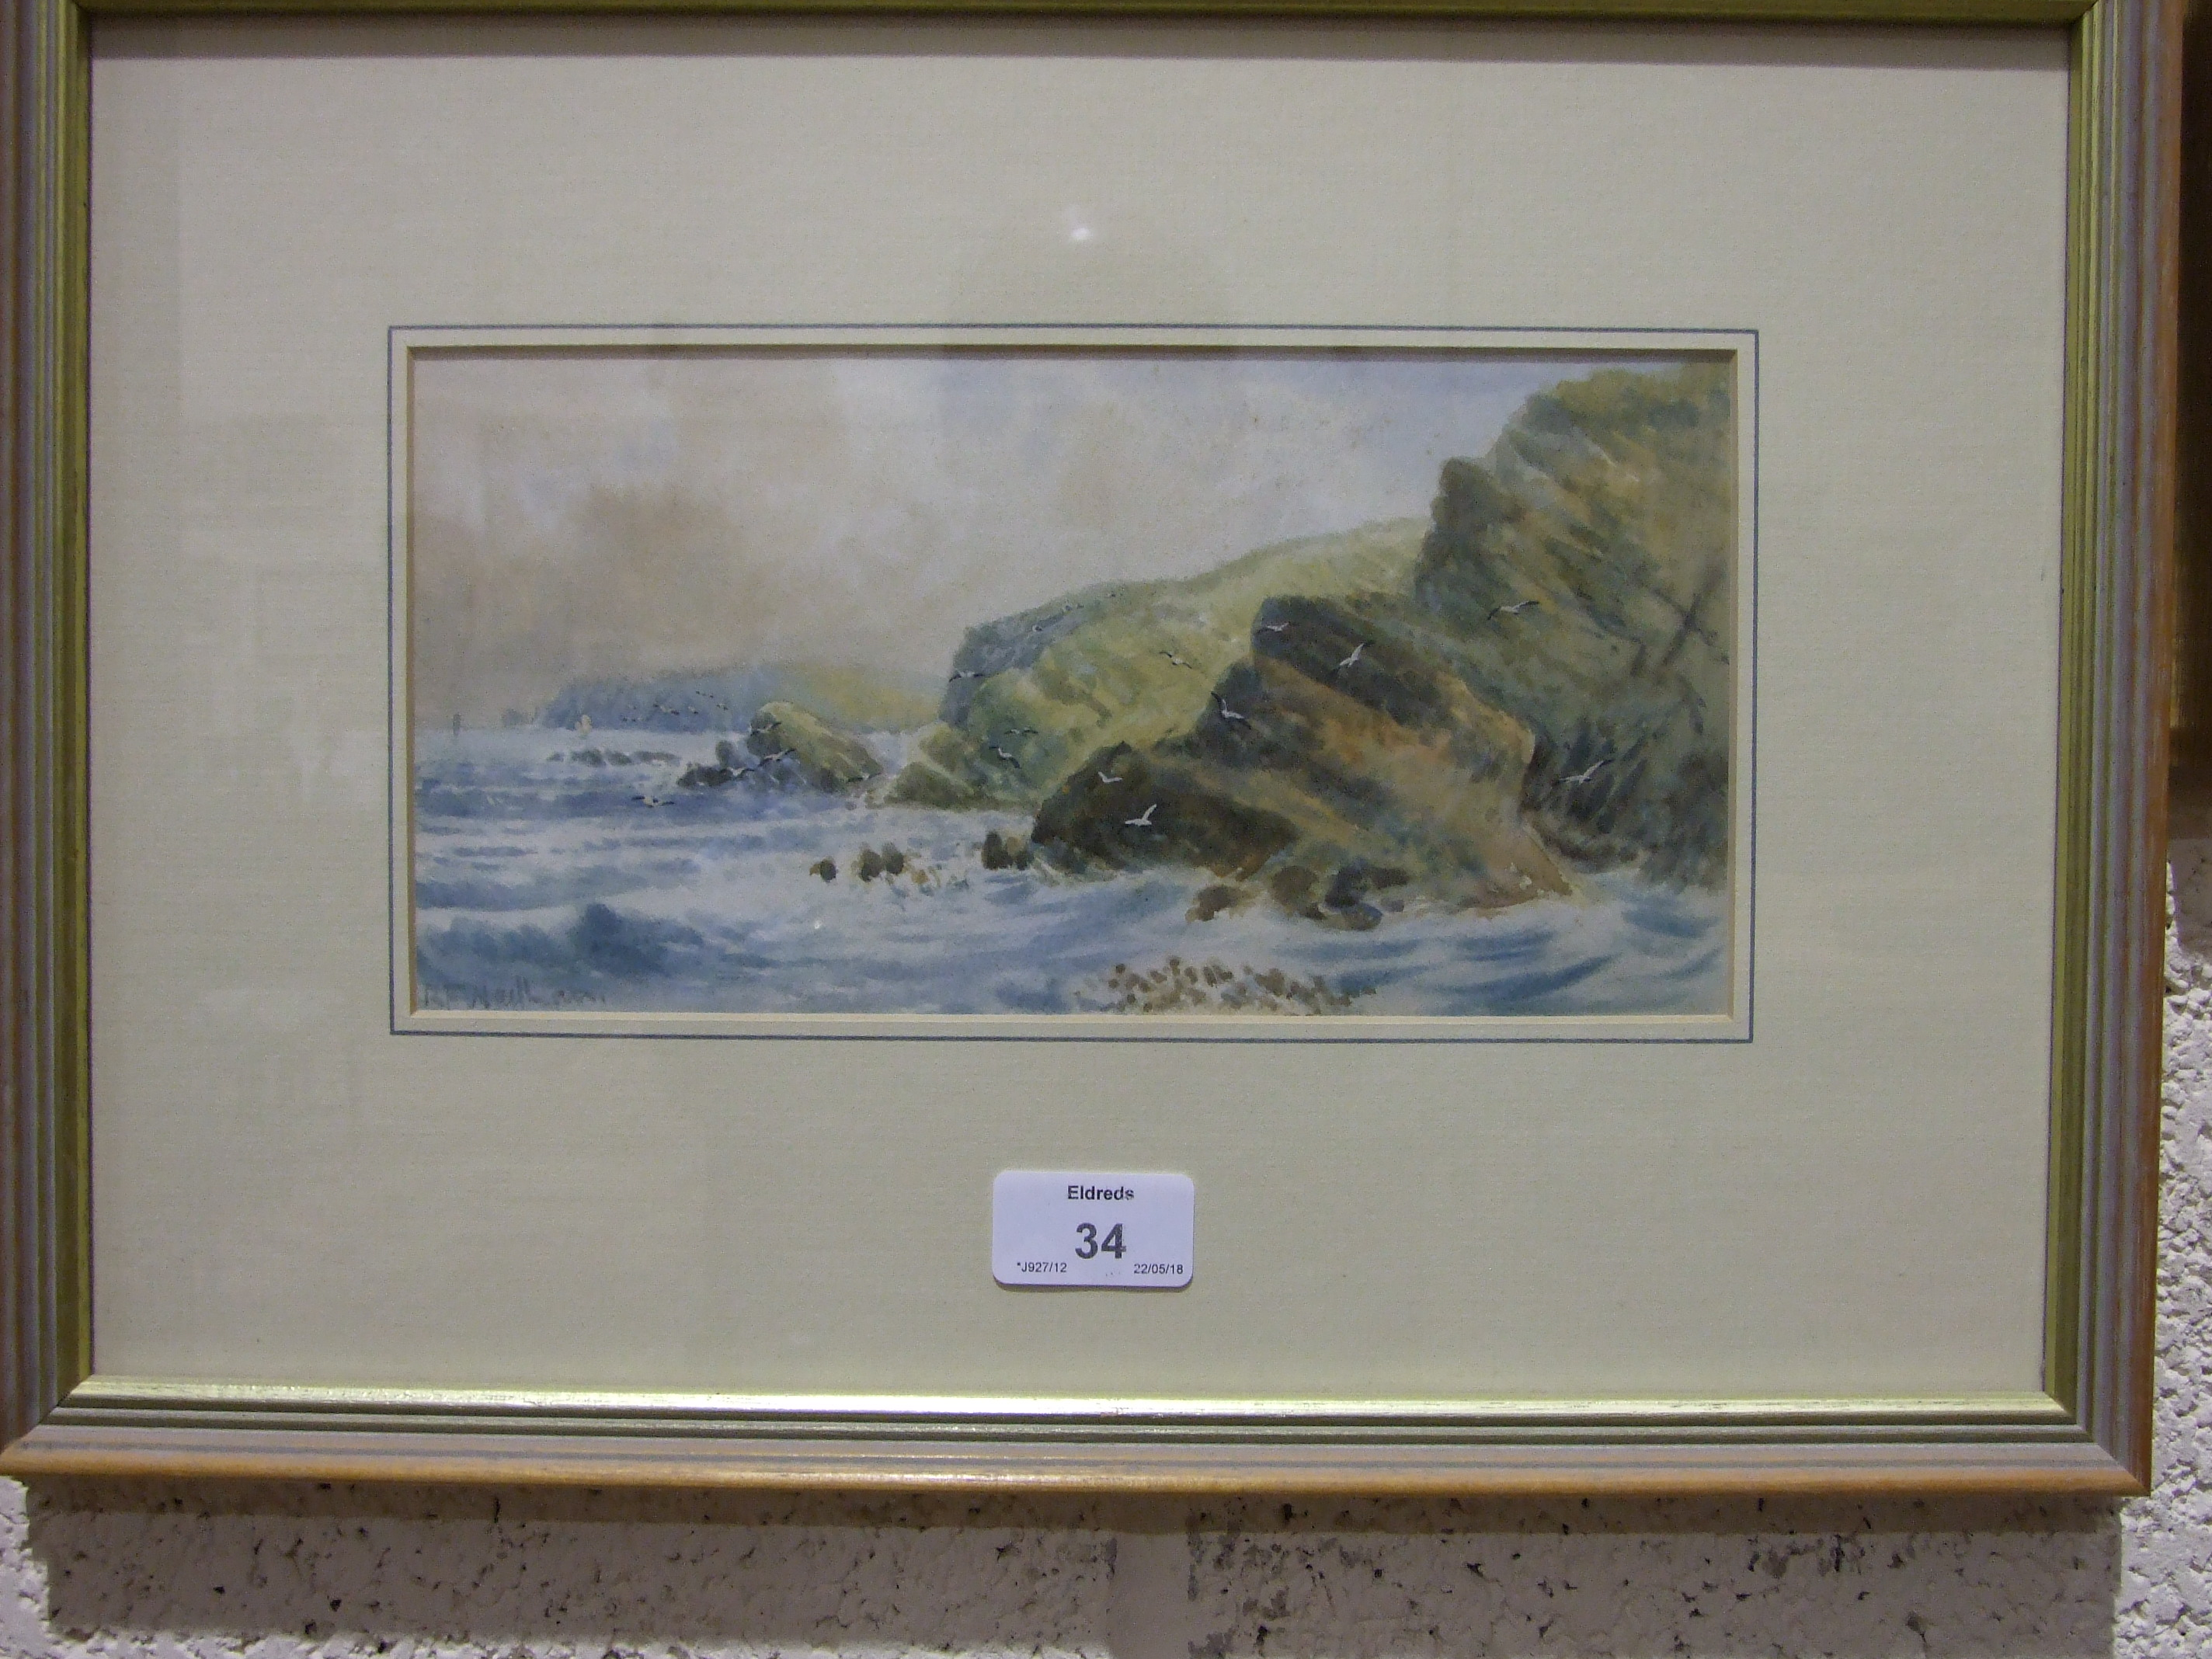 A Tyler LAND'S END Signed watercolour, 23 x 29cm, R F Wadham, COASTAL SCENE, signed watercolour, - Image 2 of 5